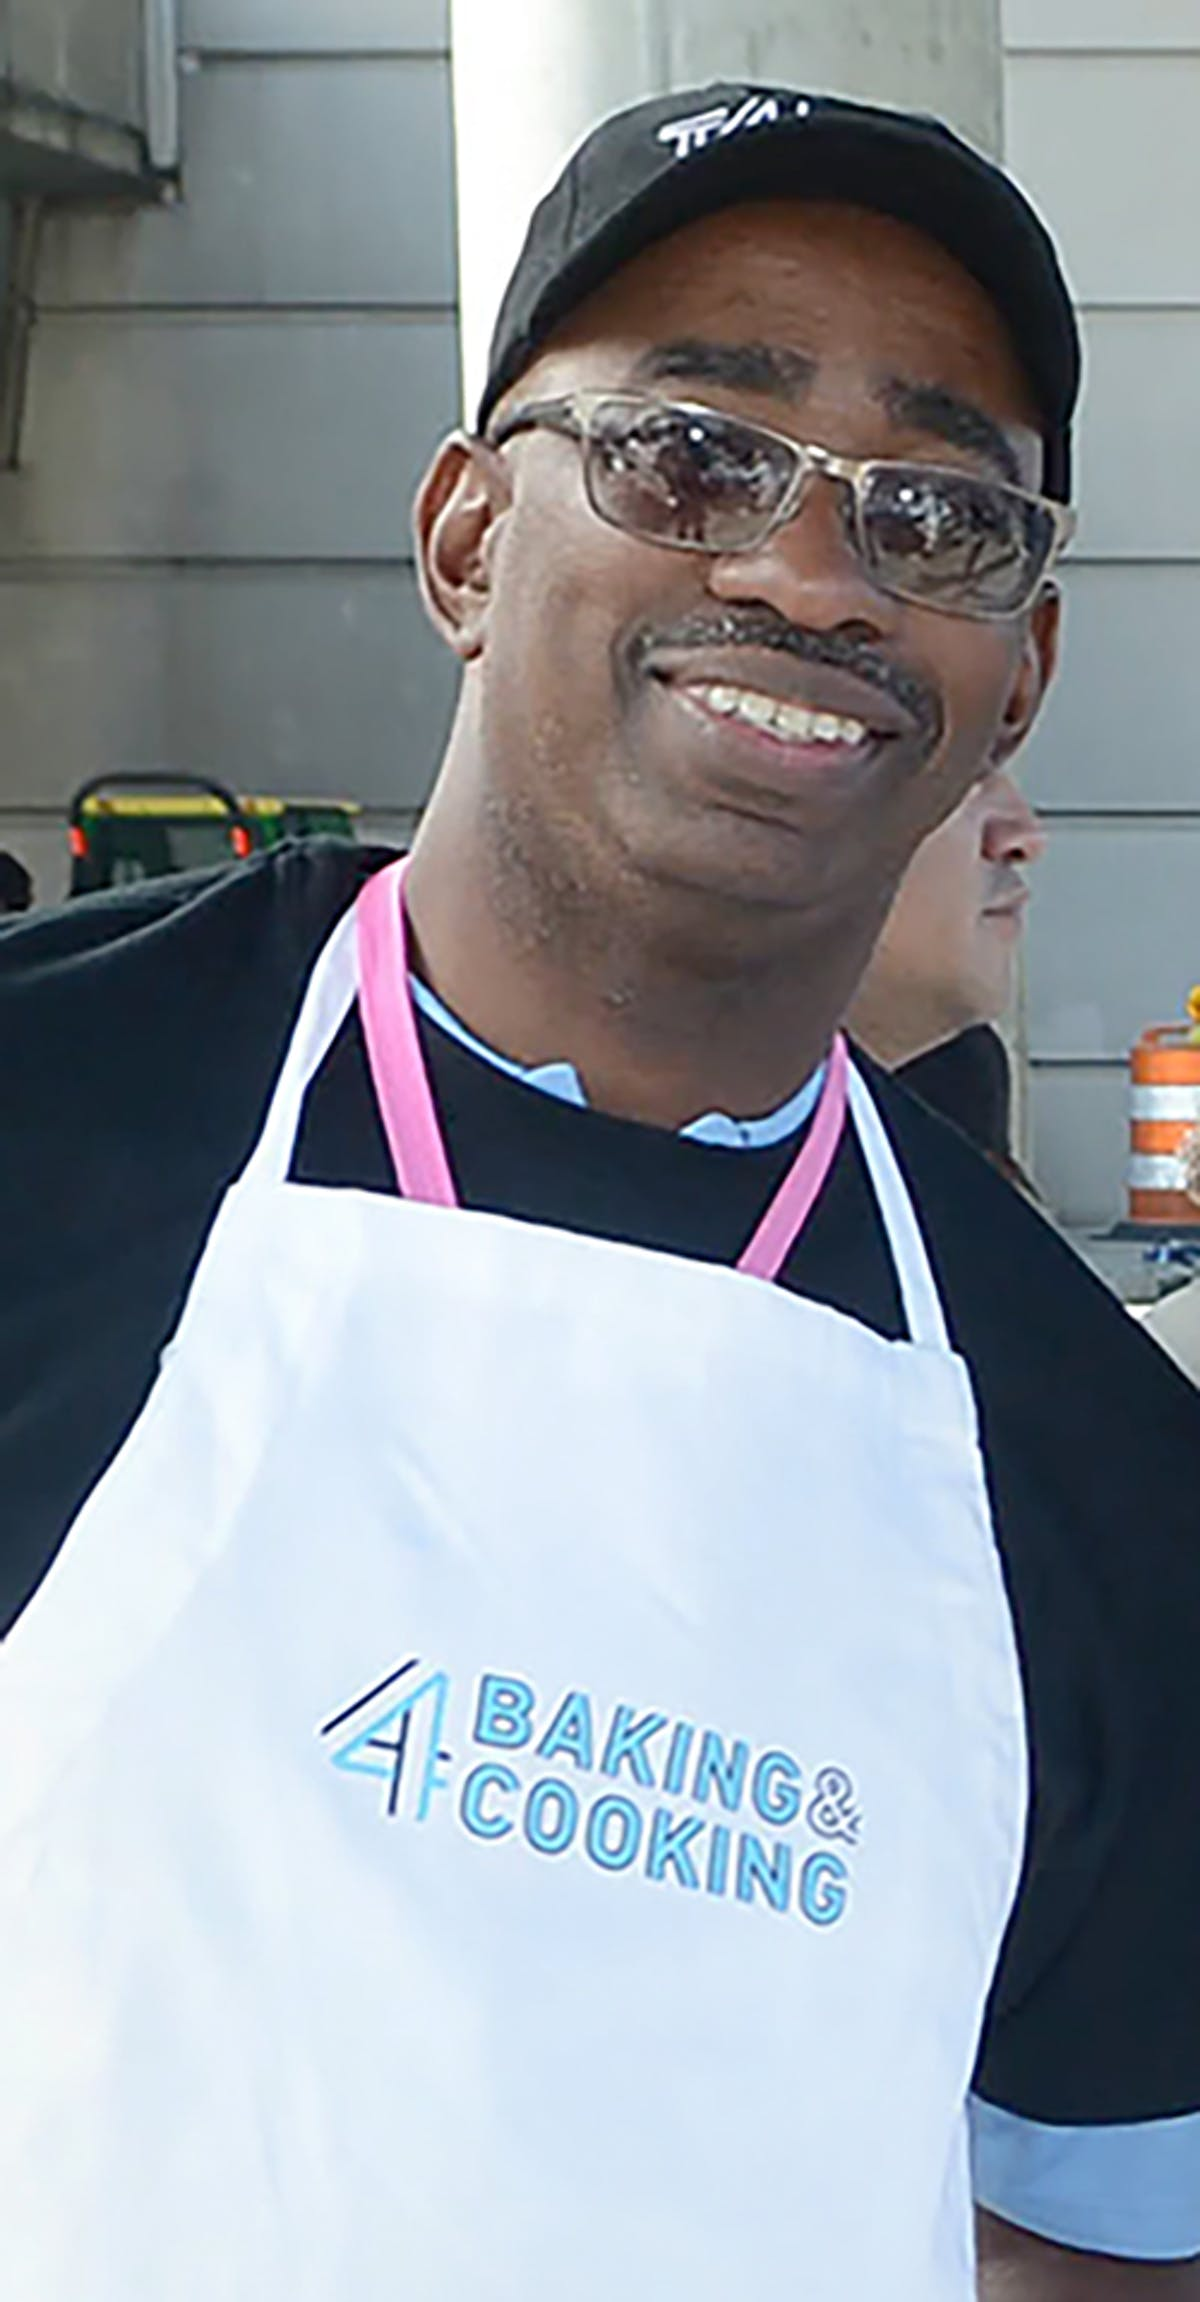 man wearing apron